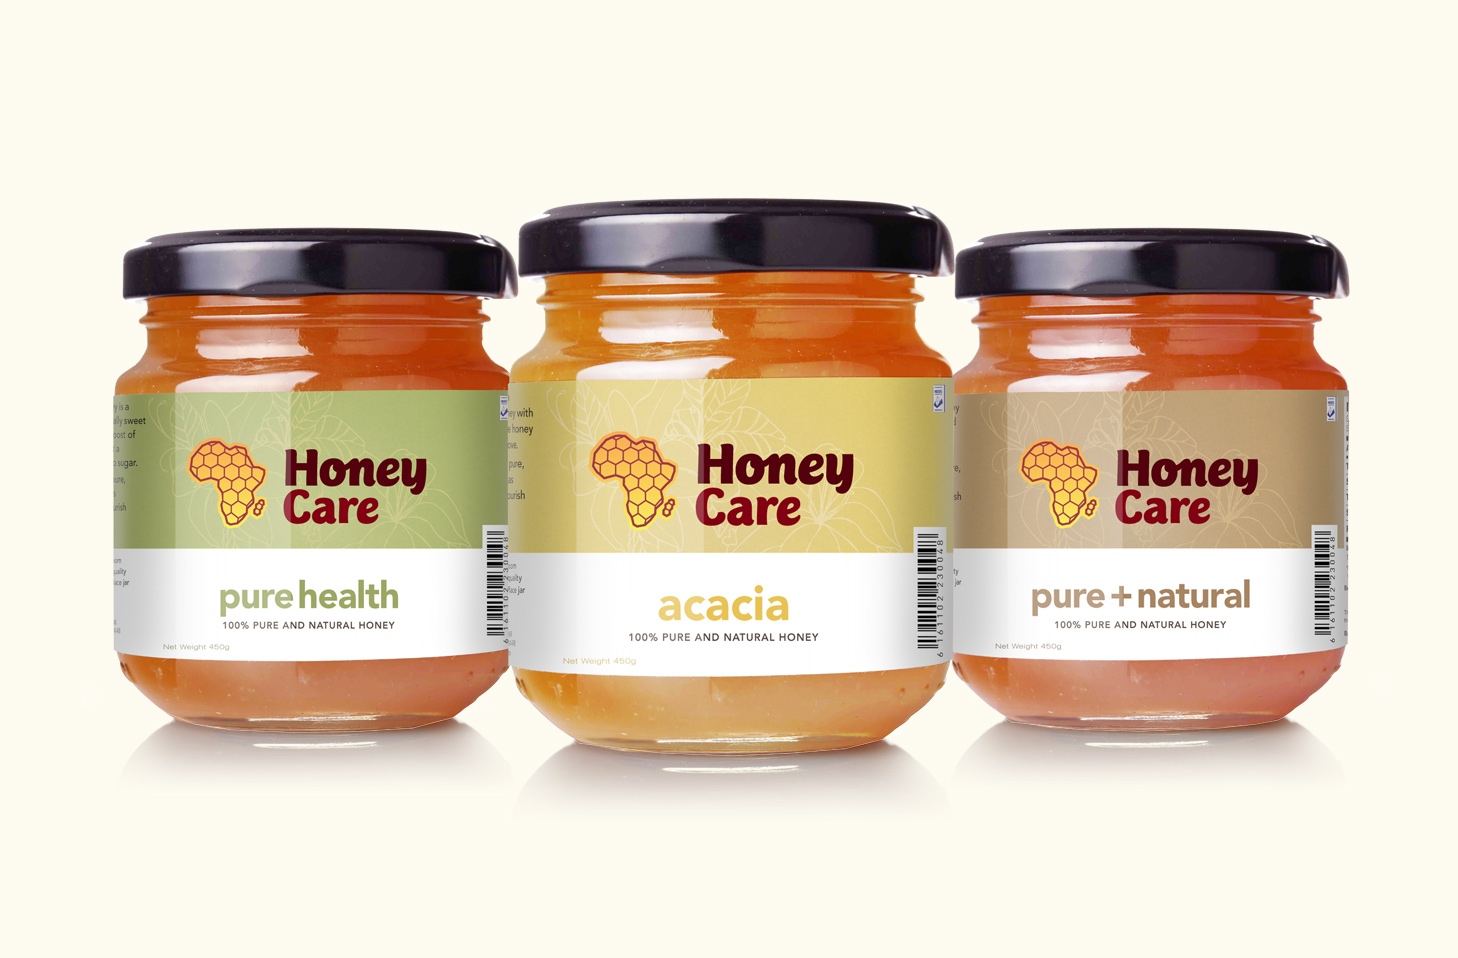 Honey packaging: pure health, acacia, and pure and natural varieties.